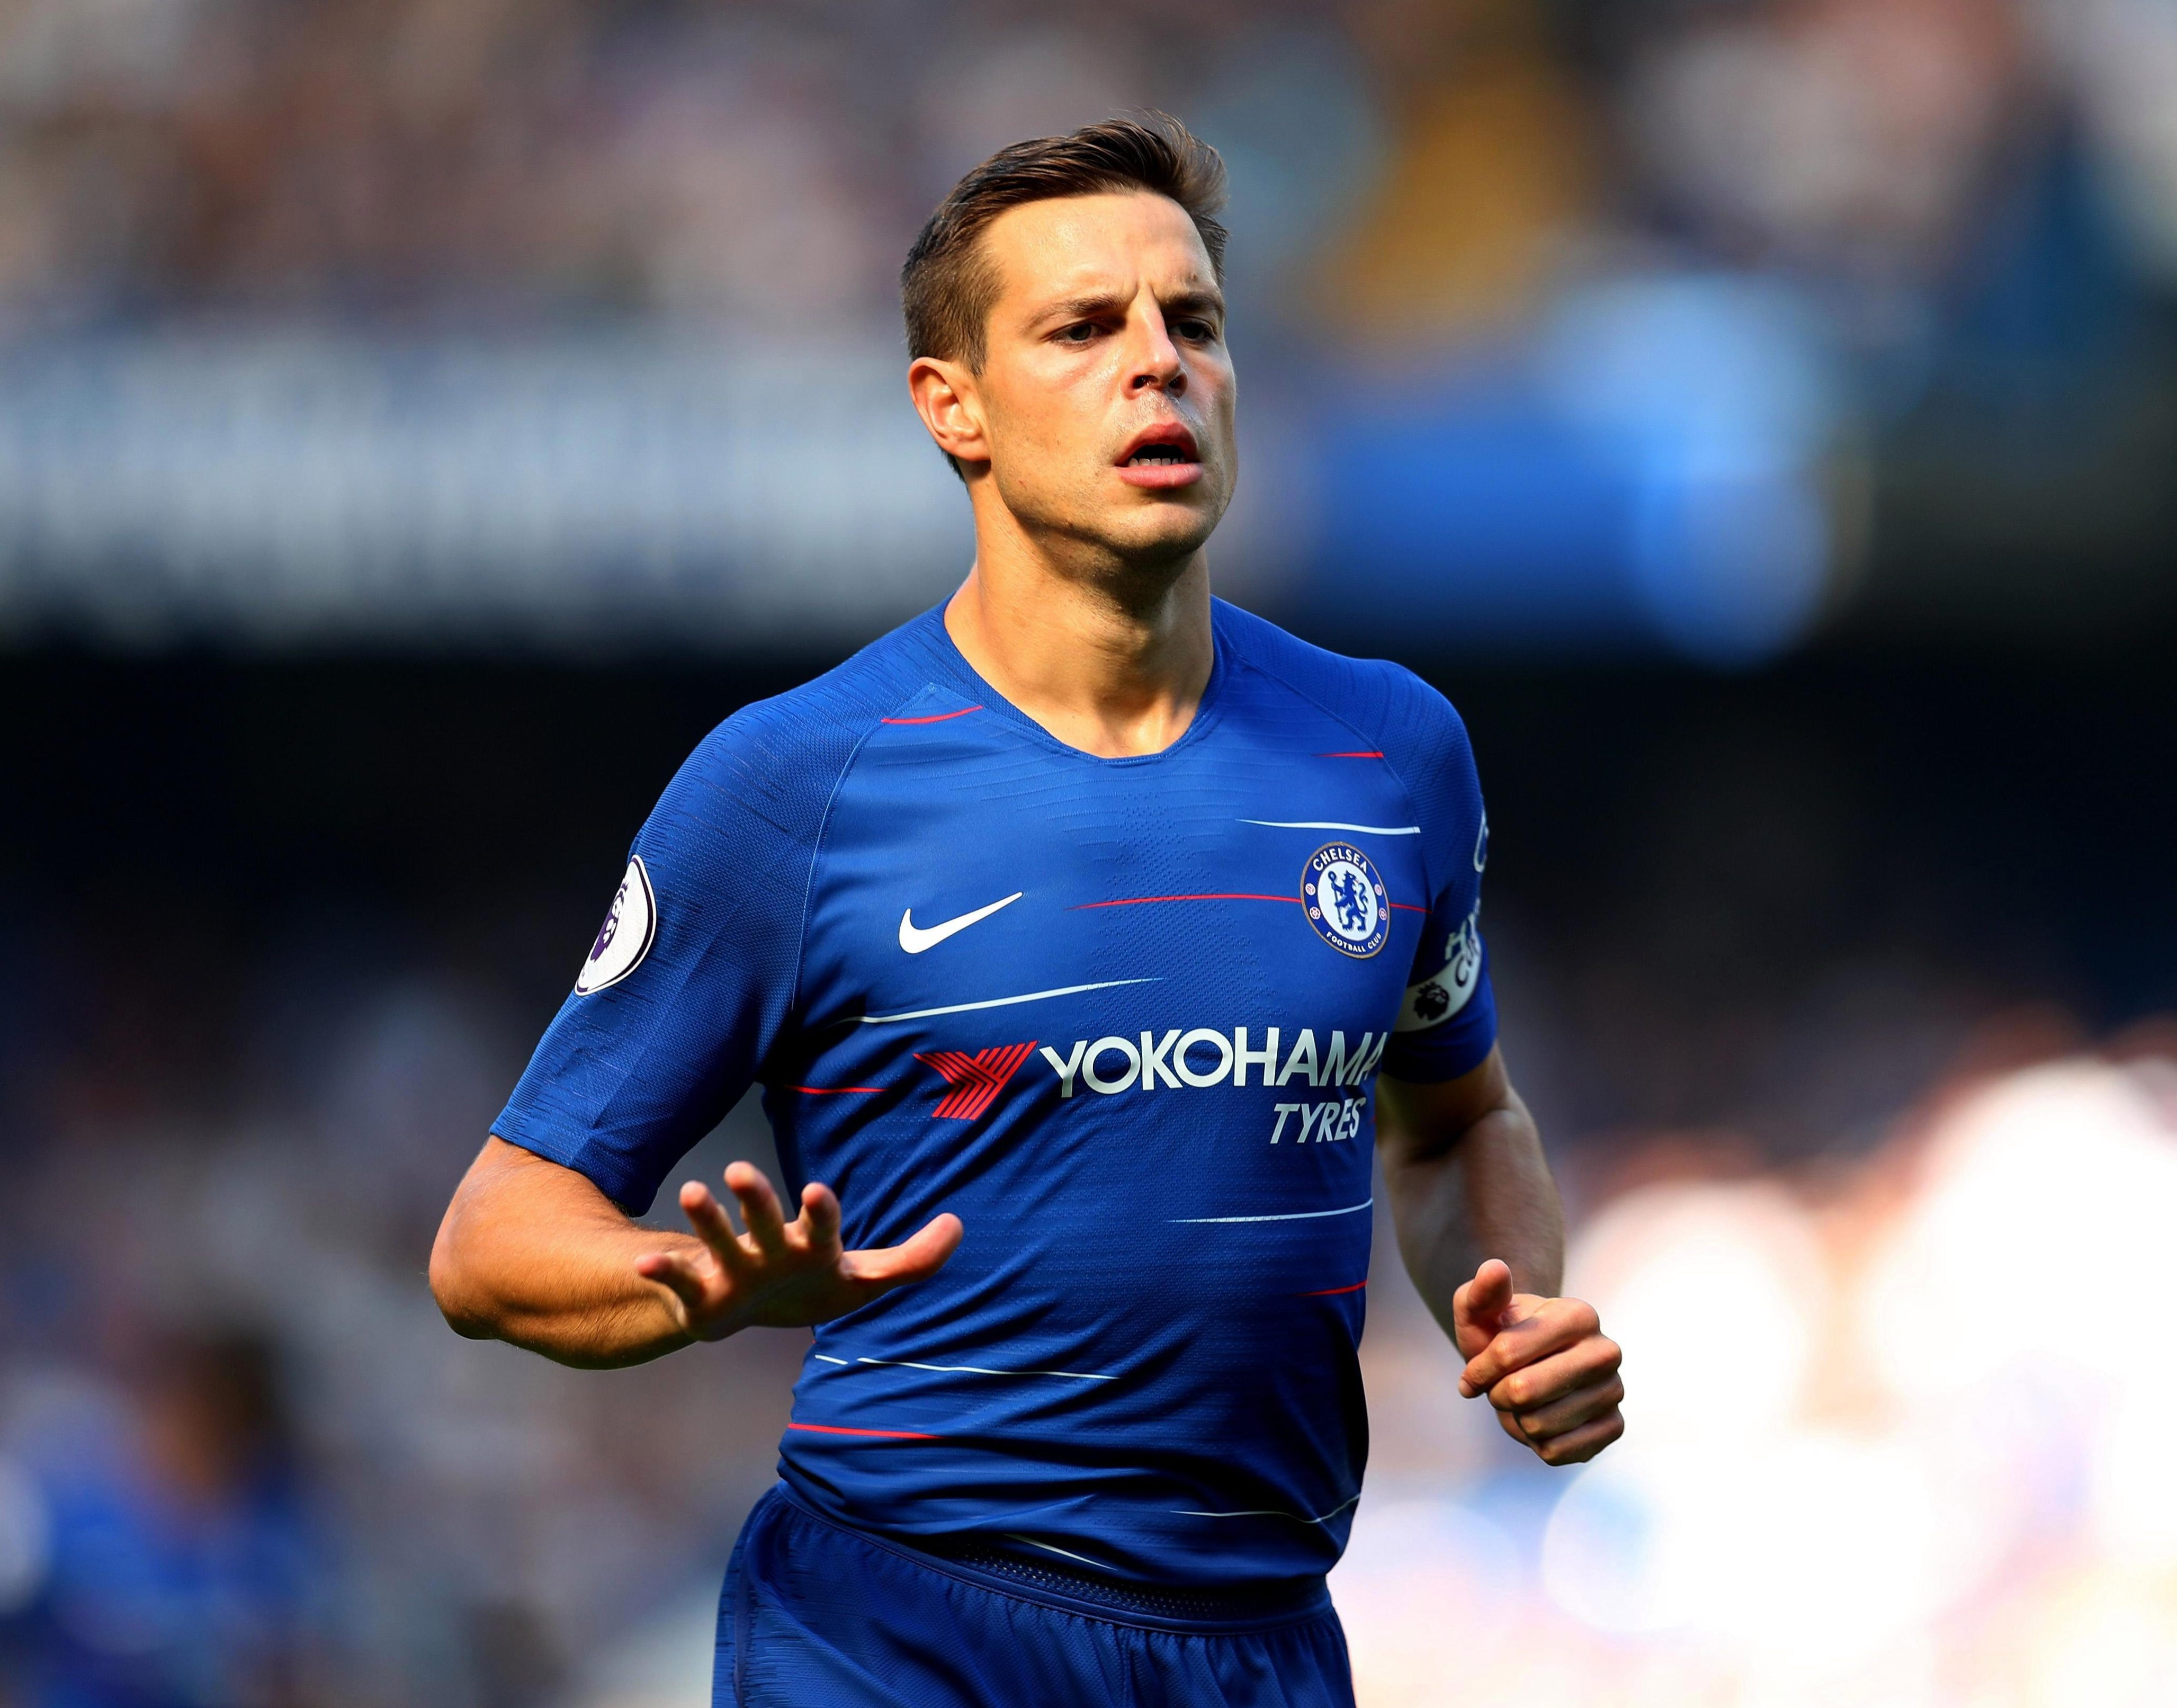 Cesar Azpilicueta is another play whose future remains uncertain